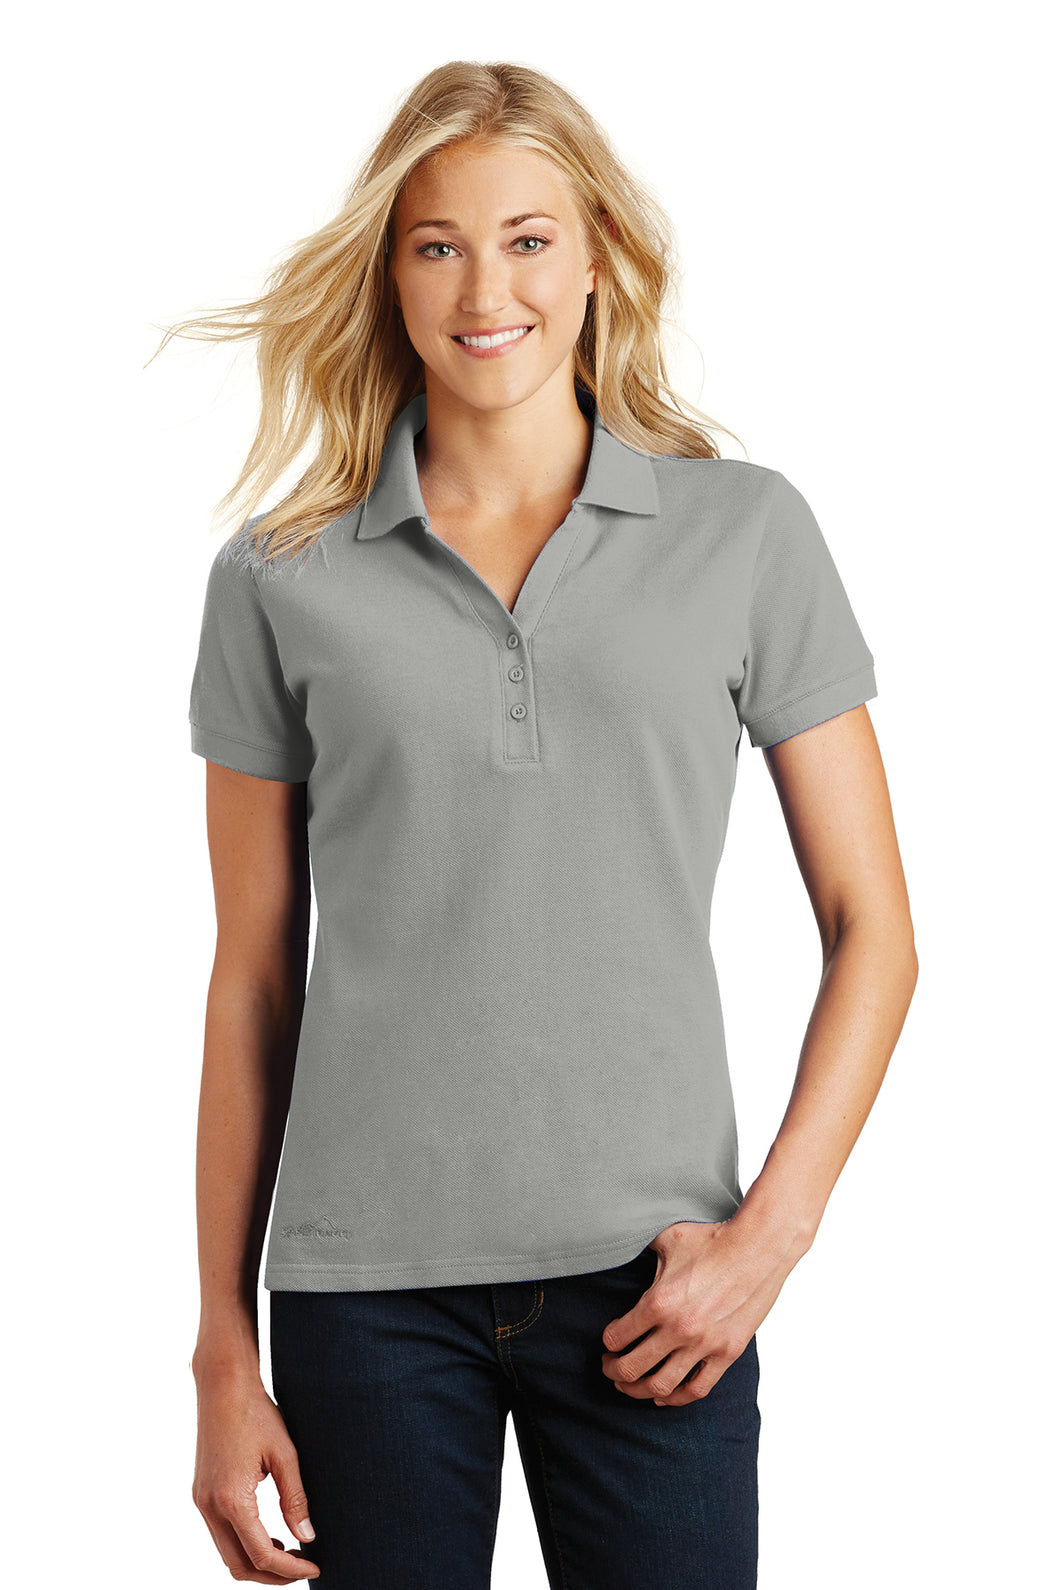 LL Two Oars (Embroidered) Women's Eddie Bauer golf polo